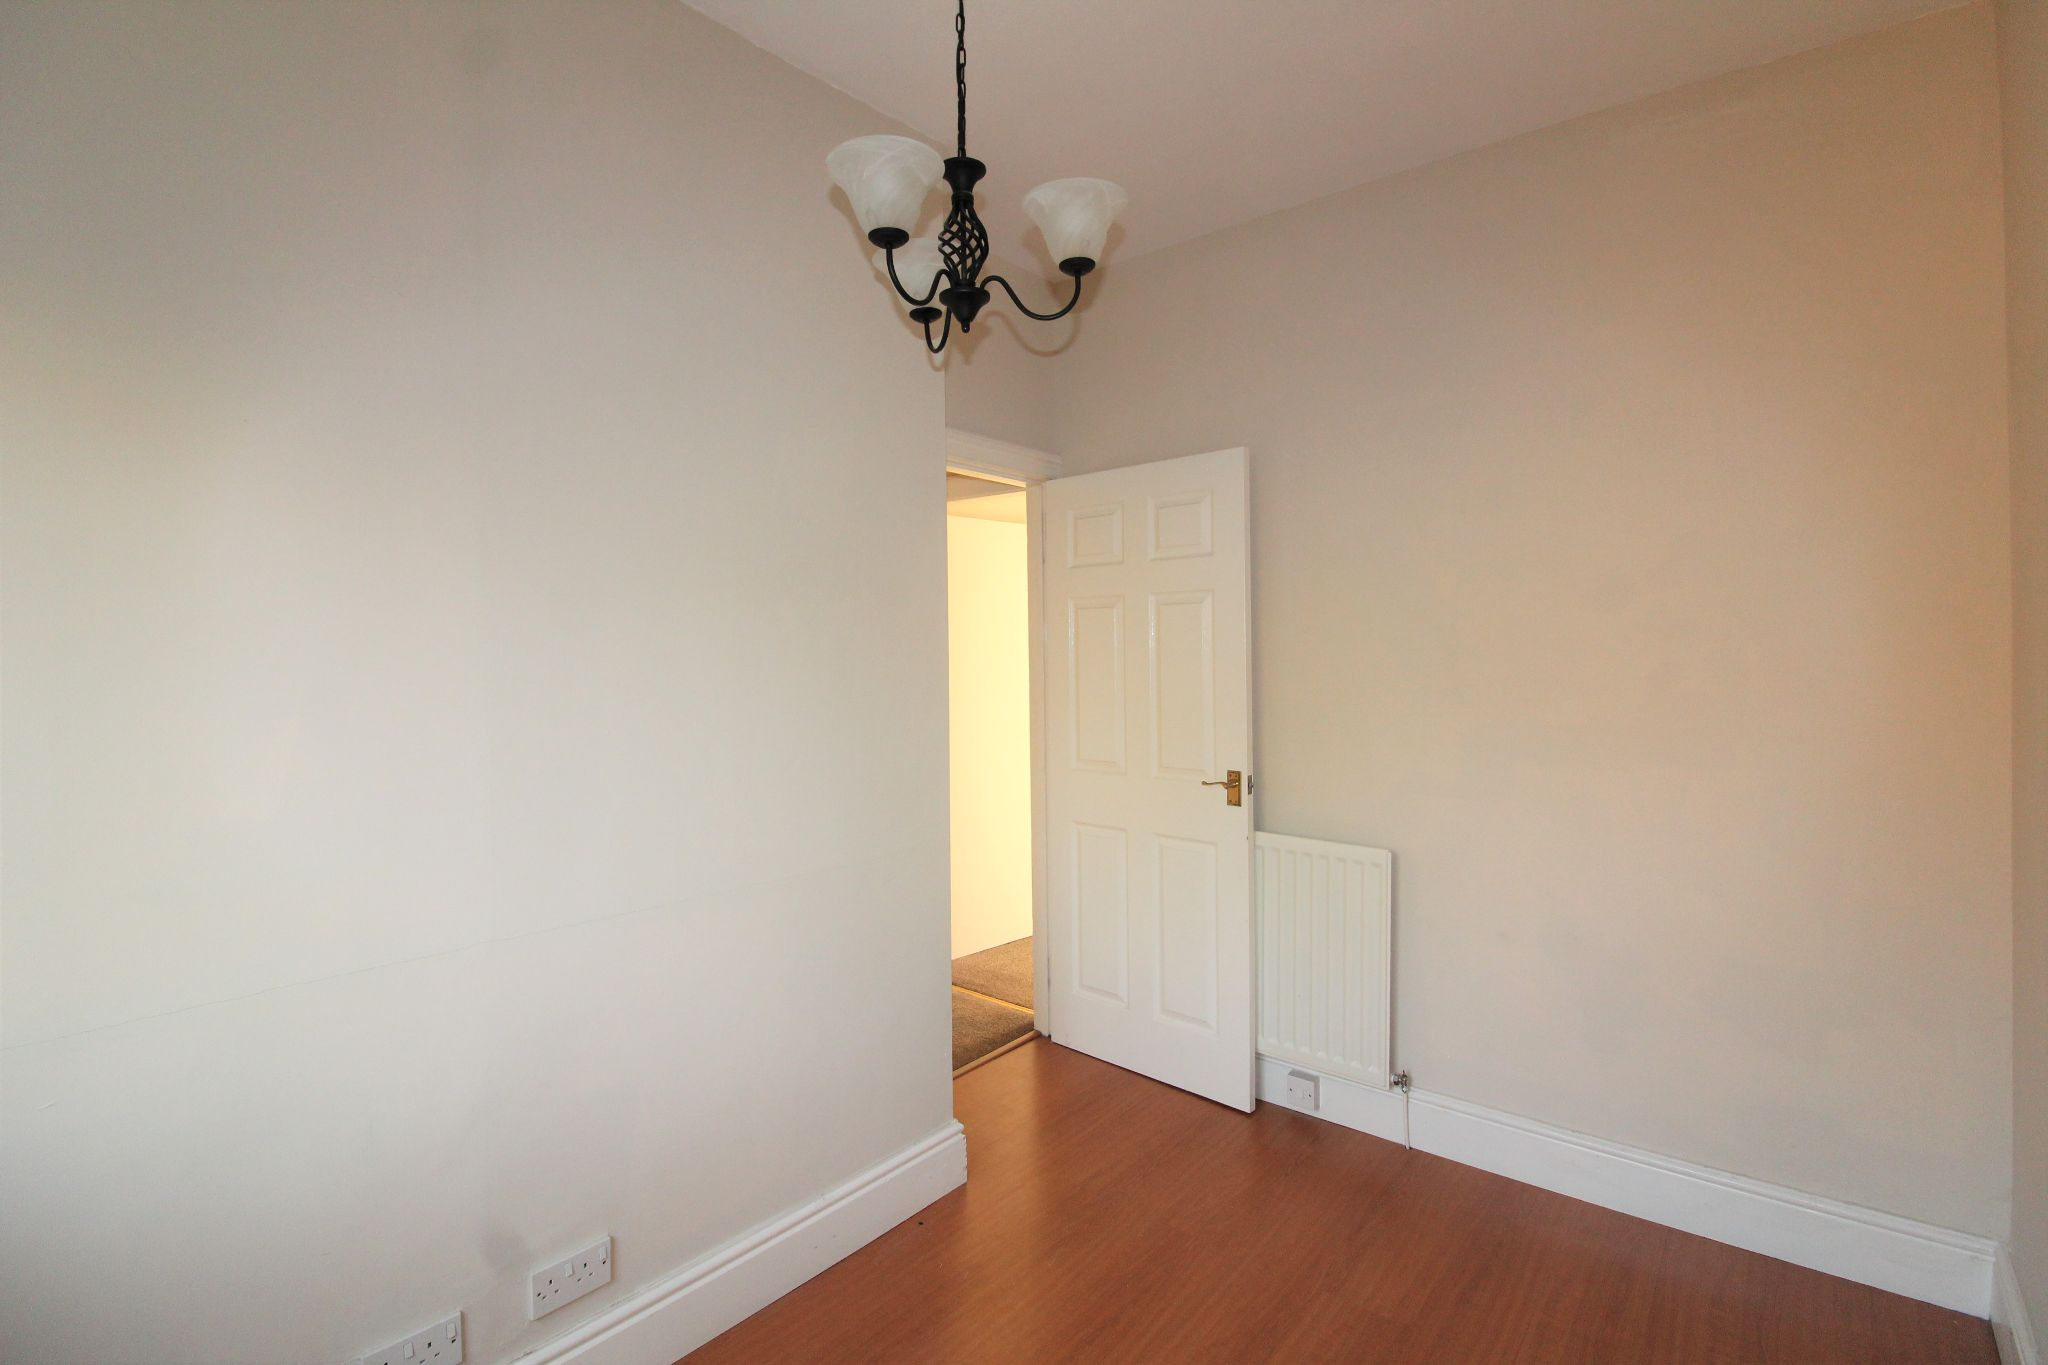 3 bedroom end terraced house For Sale in Willington And Hunwick - Photograph 52.